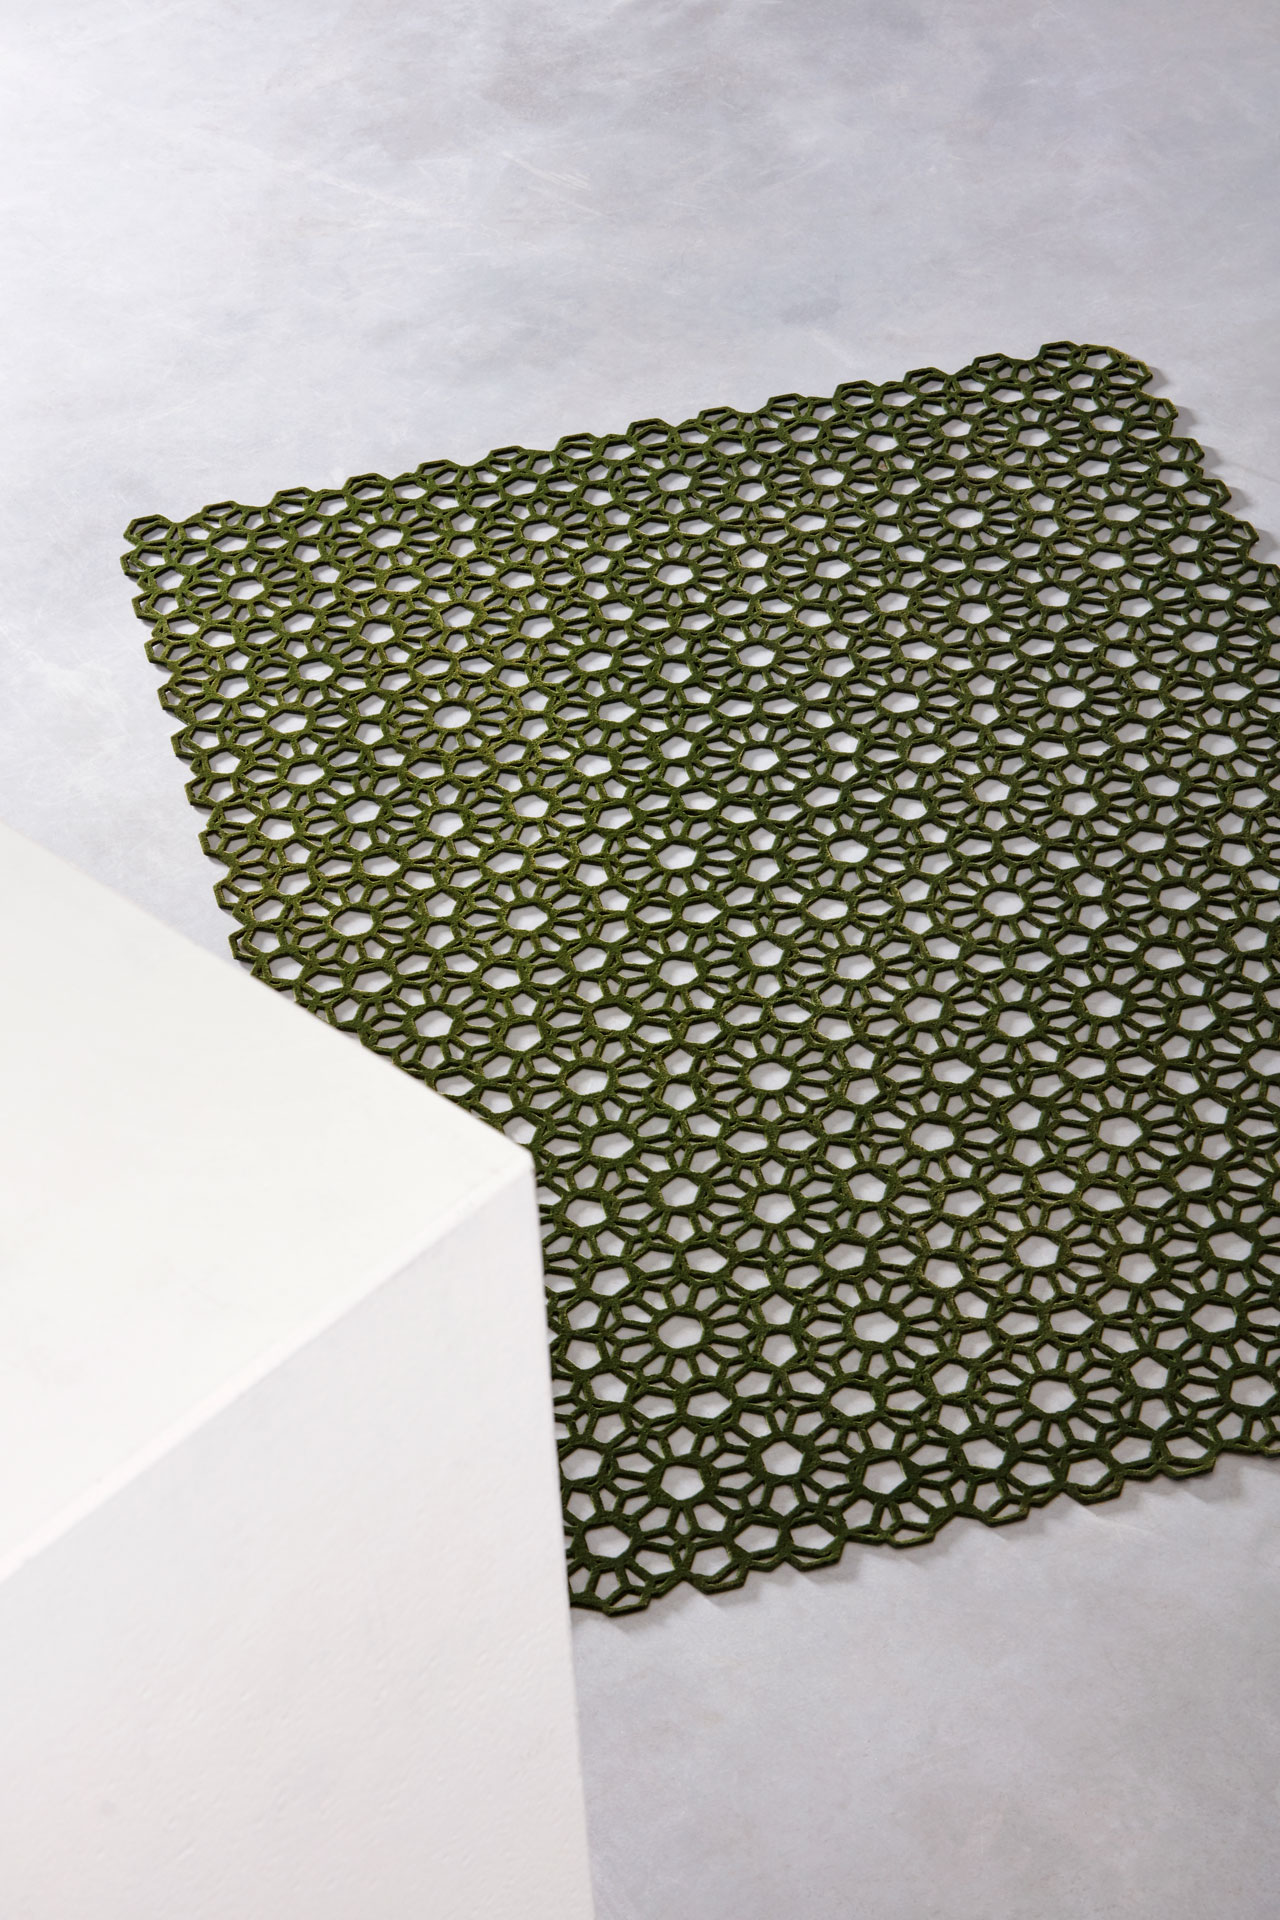 3D printed Open Rugsseries by Studio Plott. Photo by Ronald Smits.